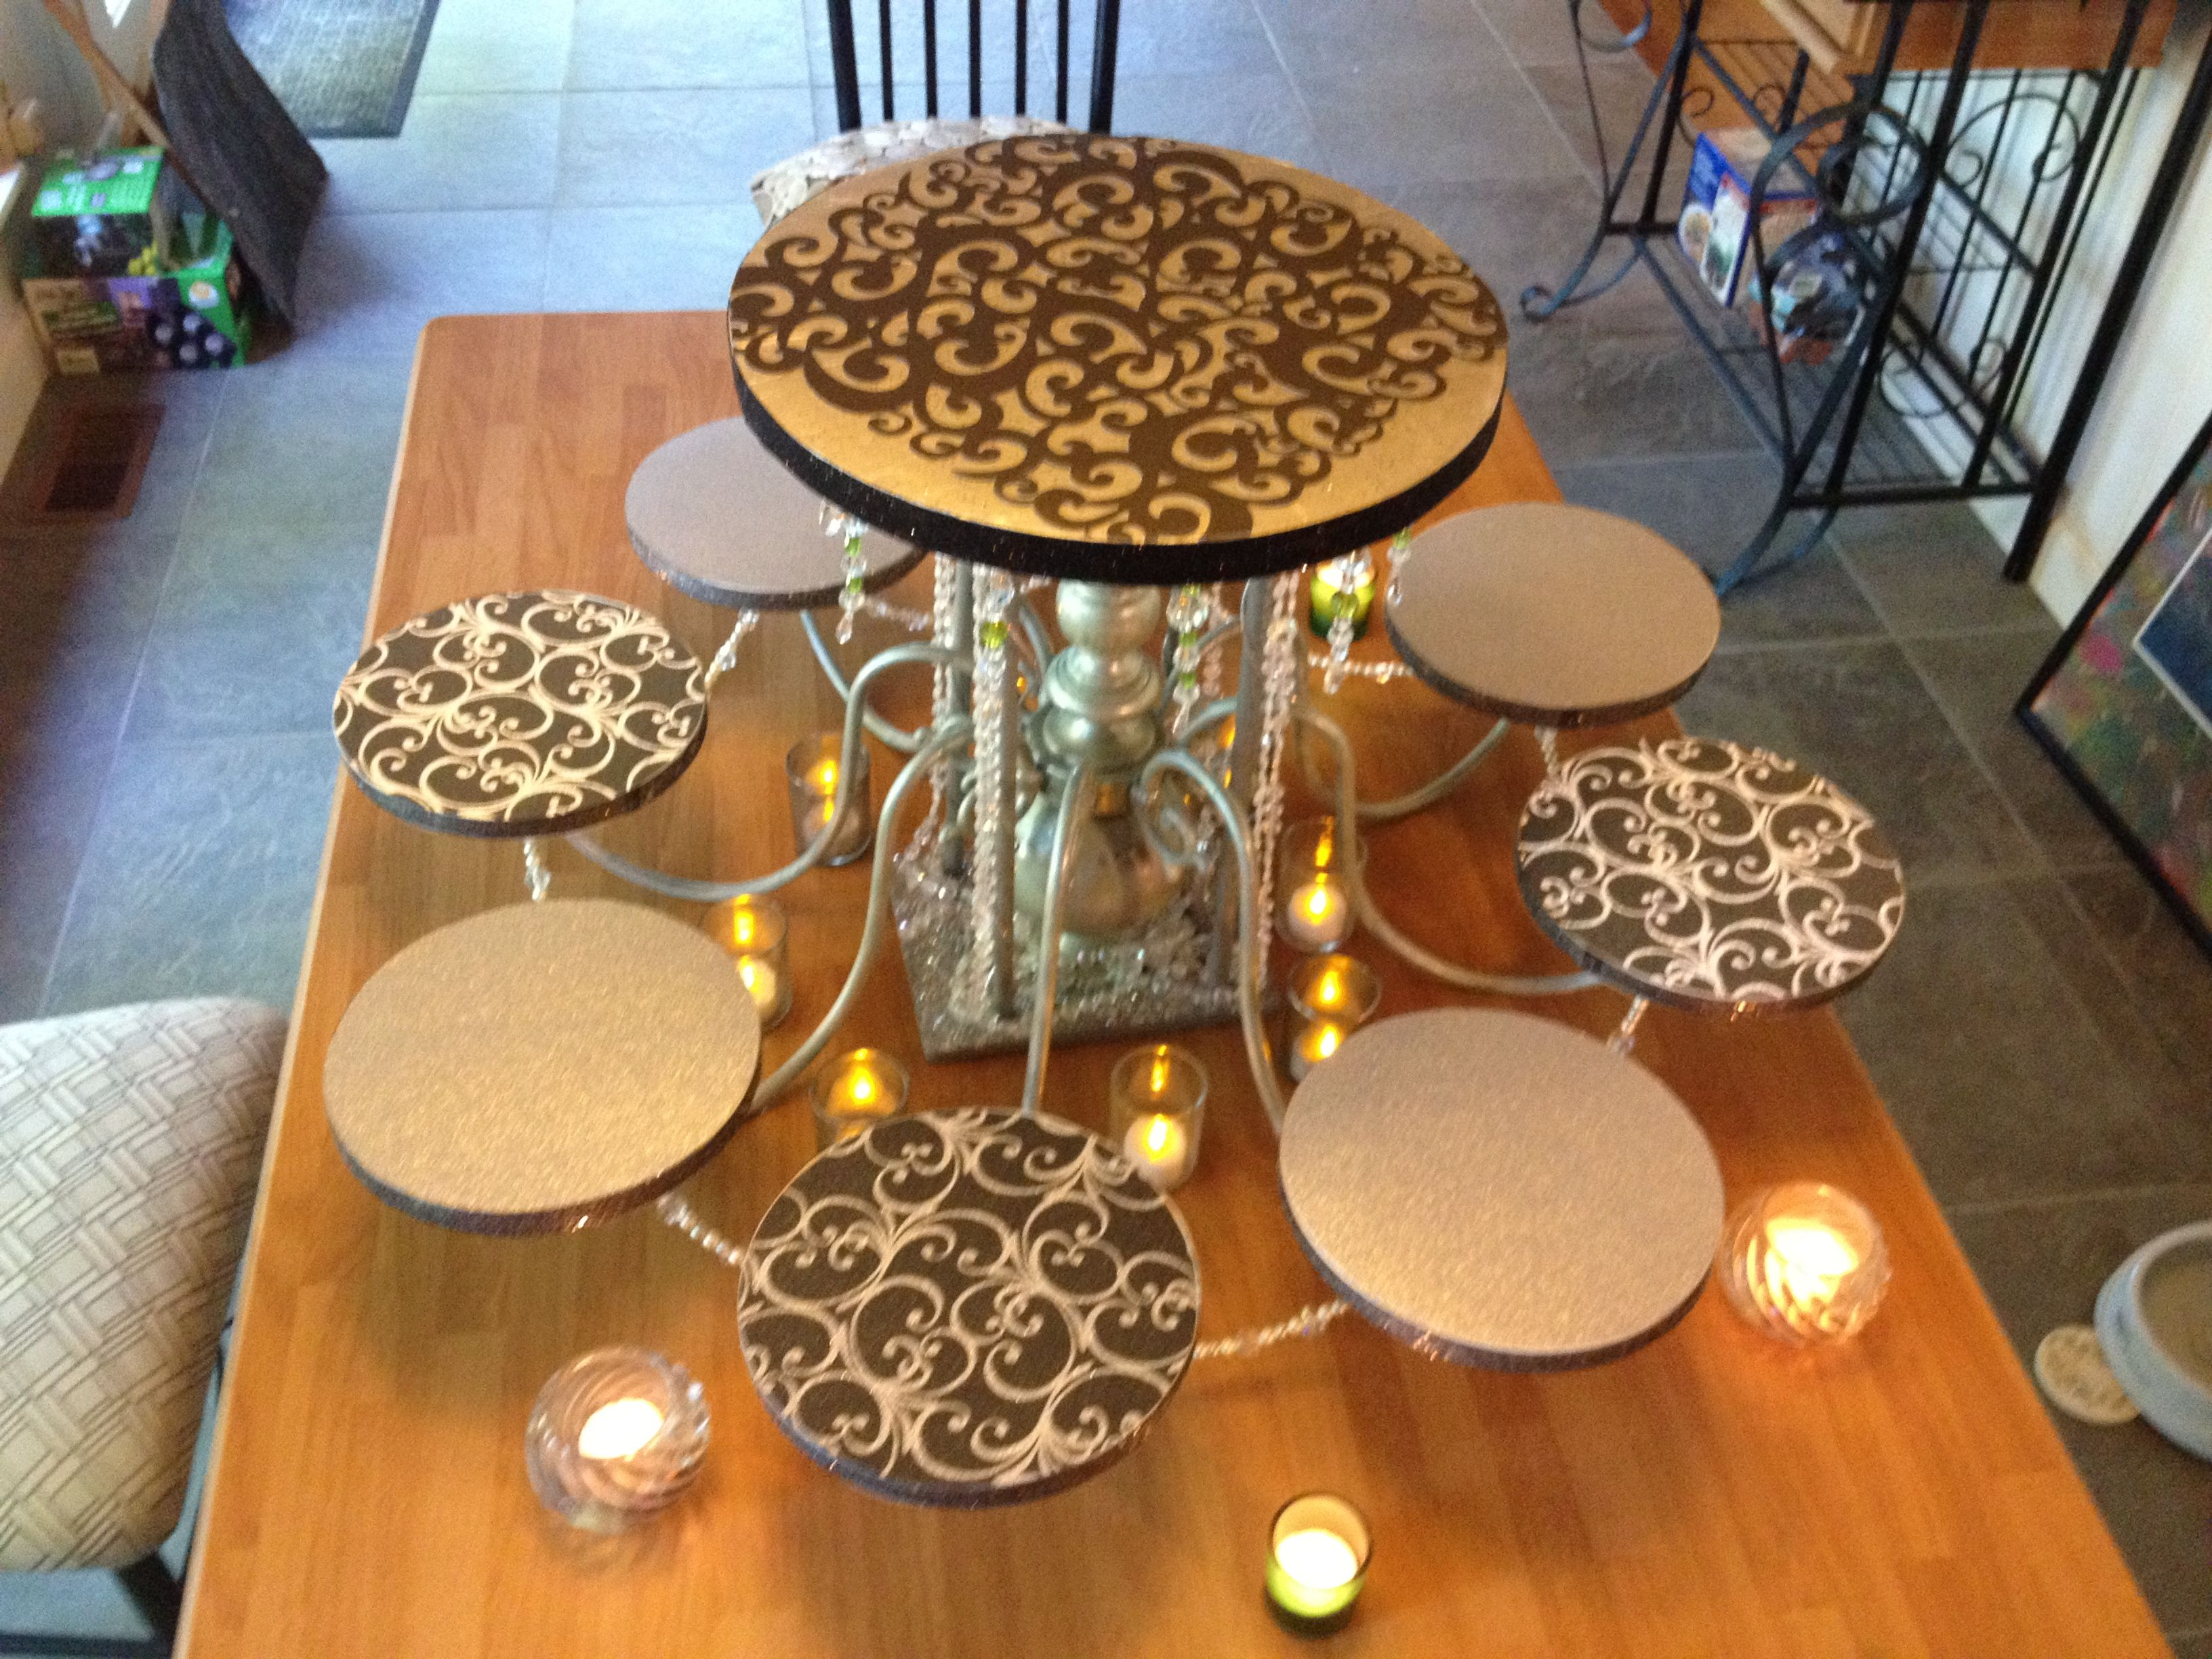 Diy Cake Stand For Dessert Table Must Figure Out How To Make This